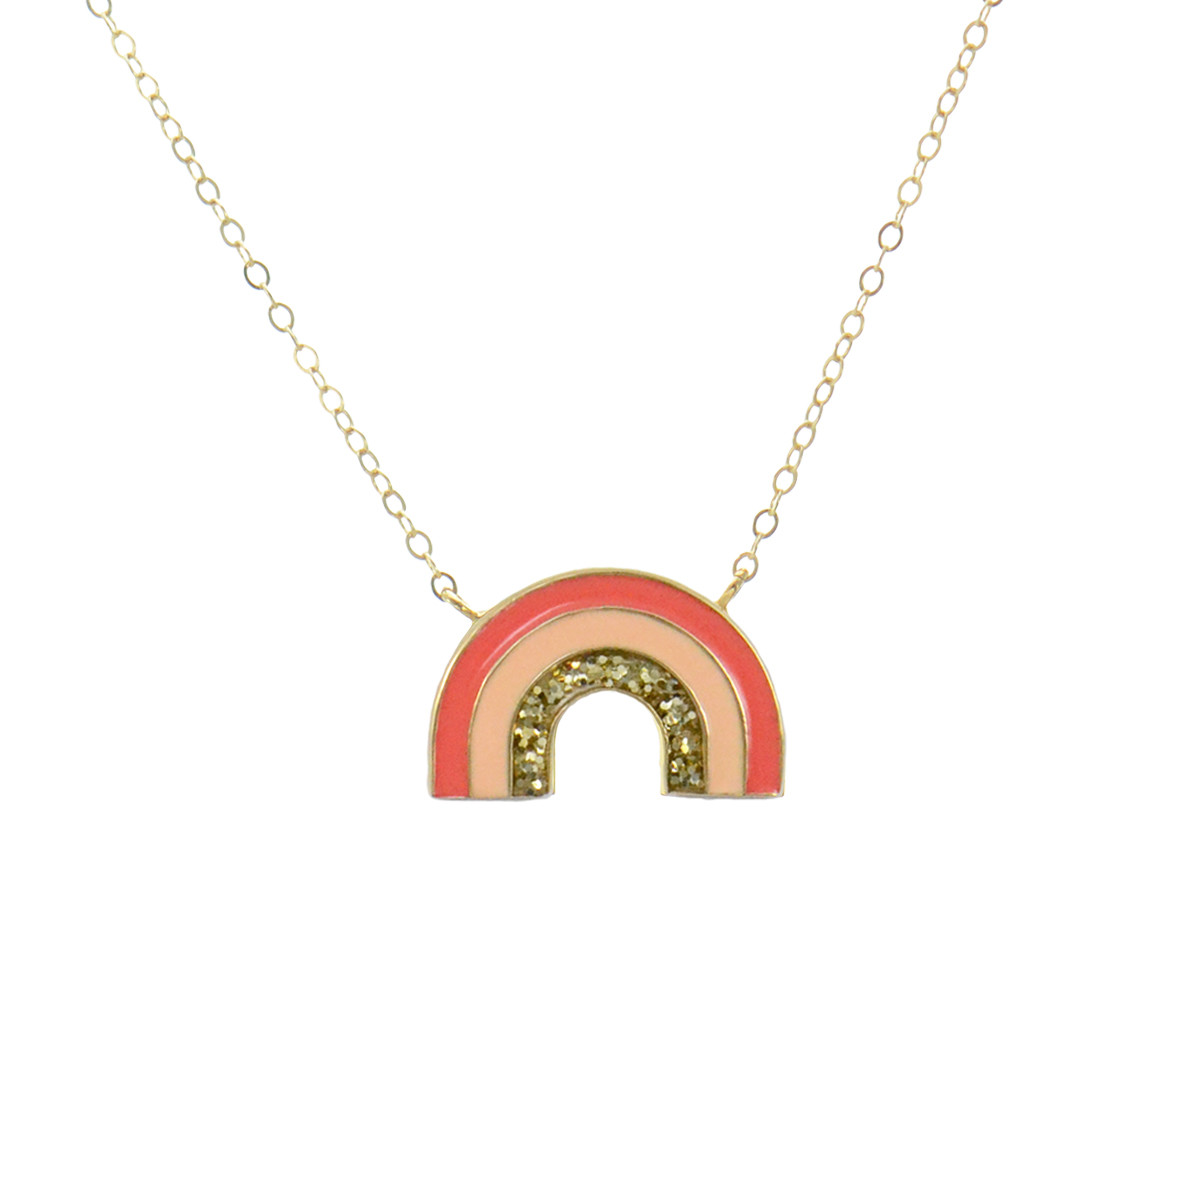 of honey img necklace jewellery madison product dainty image rainbow